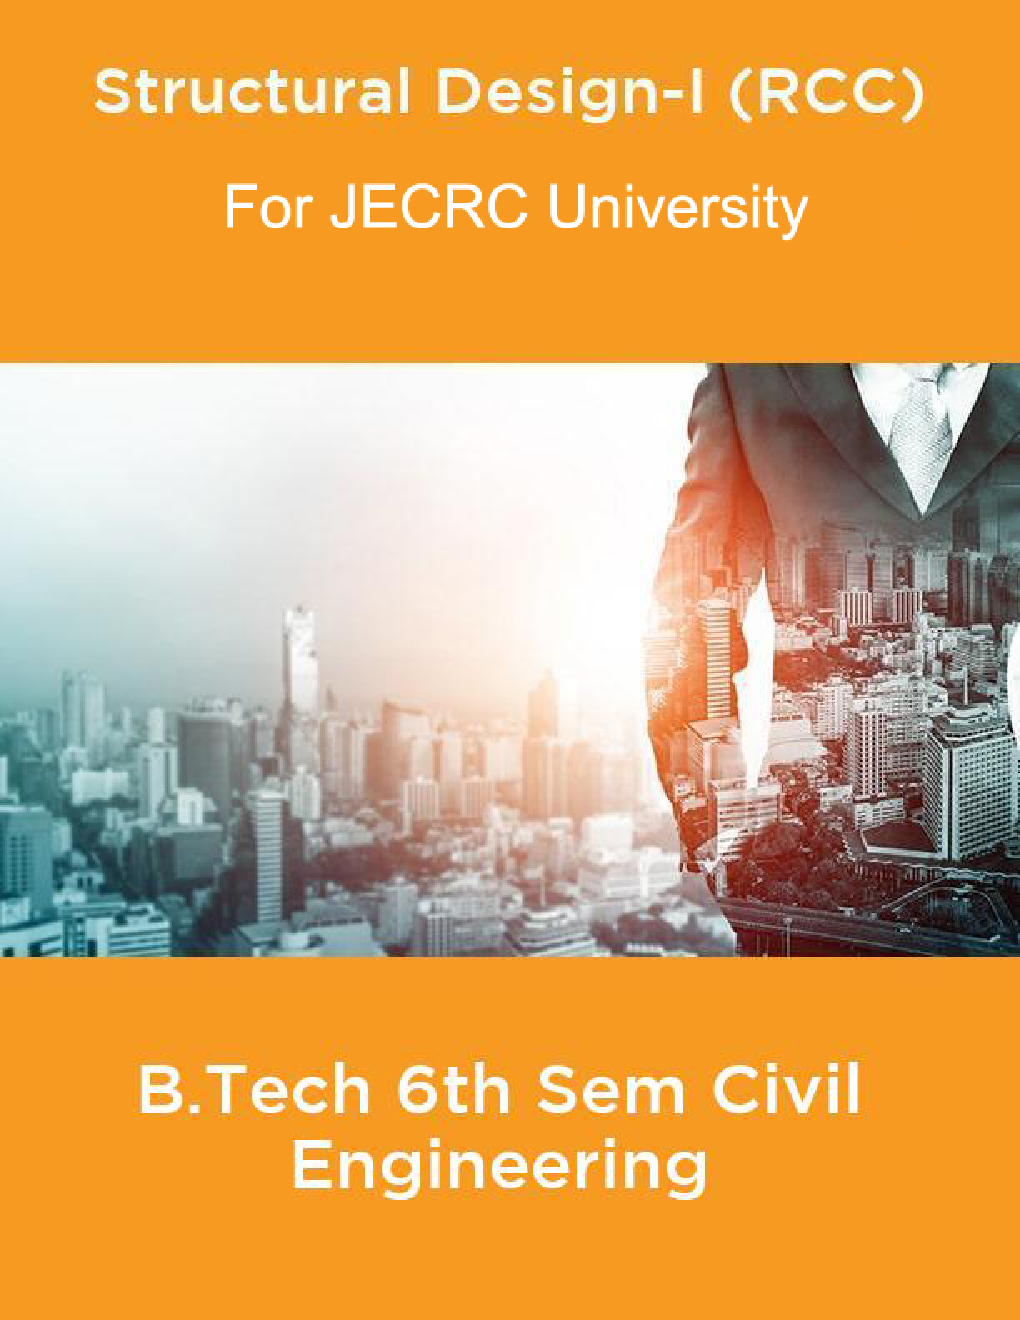 Structural Design-I (RCC) B.Tech 6th Sem Civil Engineering For JECRC University - Page 1